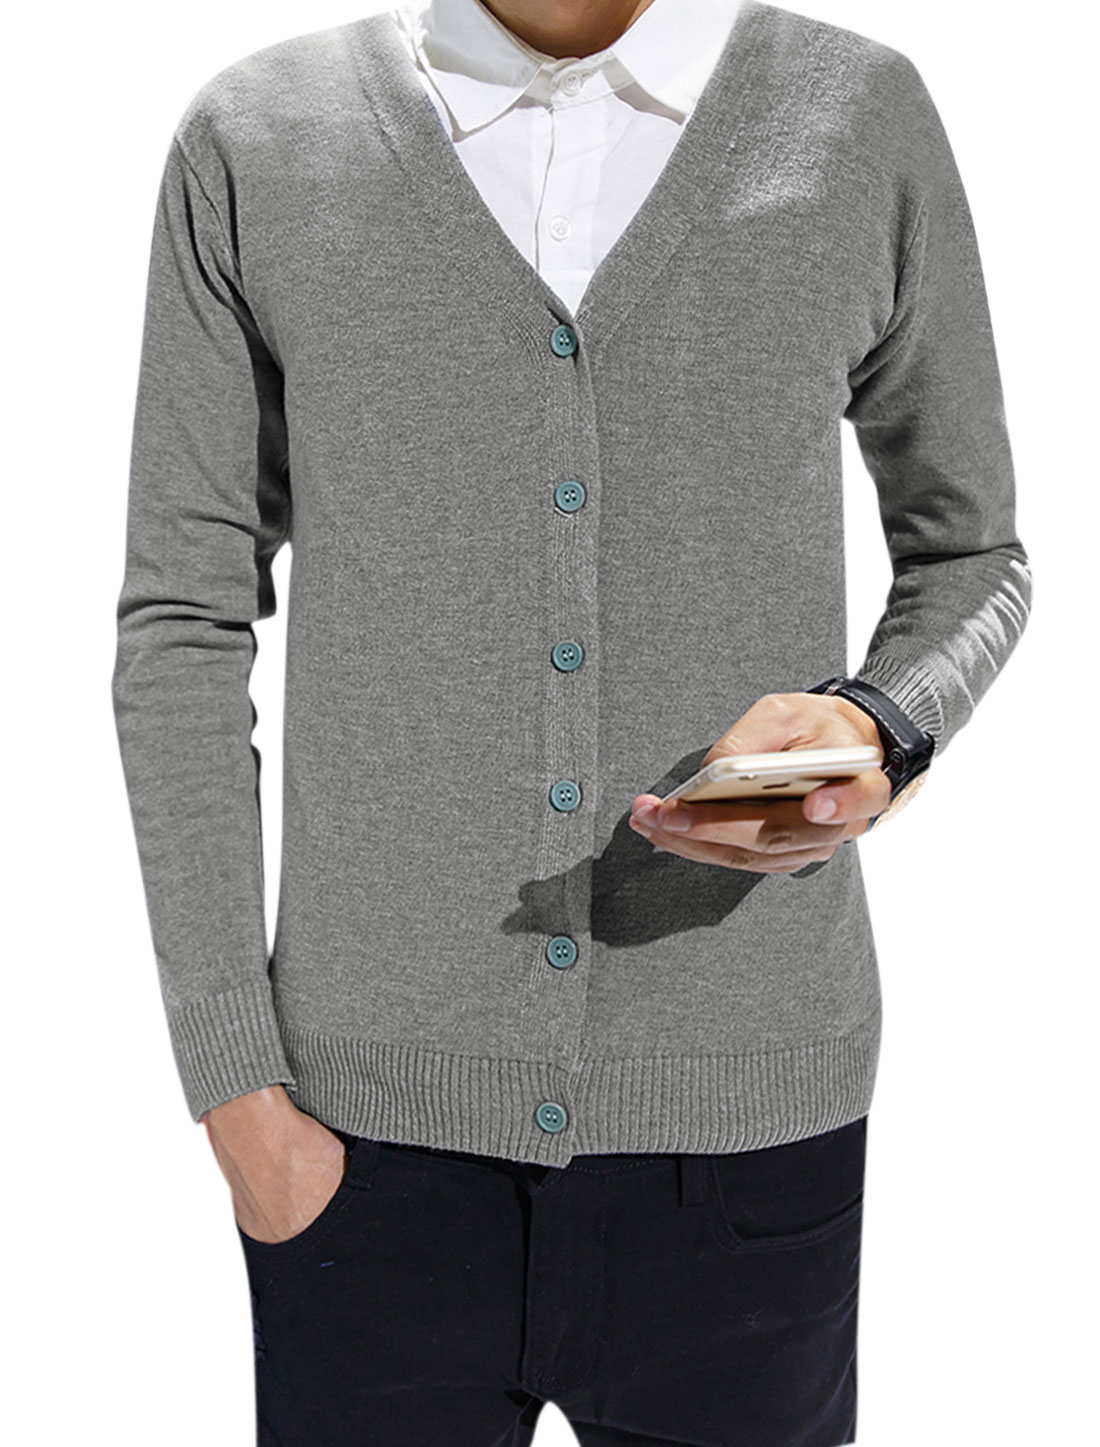 Men Long Sleeves Slim Fit V Neck Single Breasted Knitting Cardigan Gray S